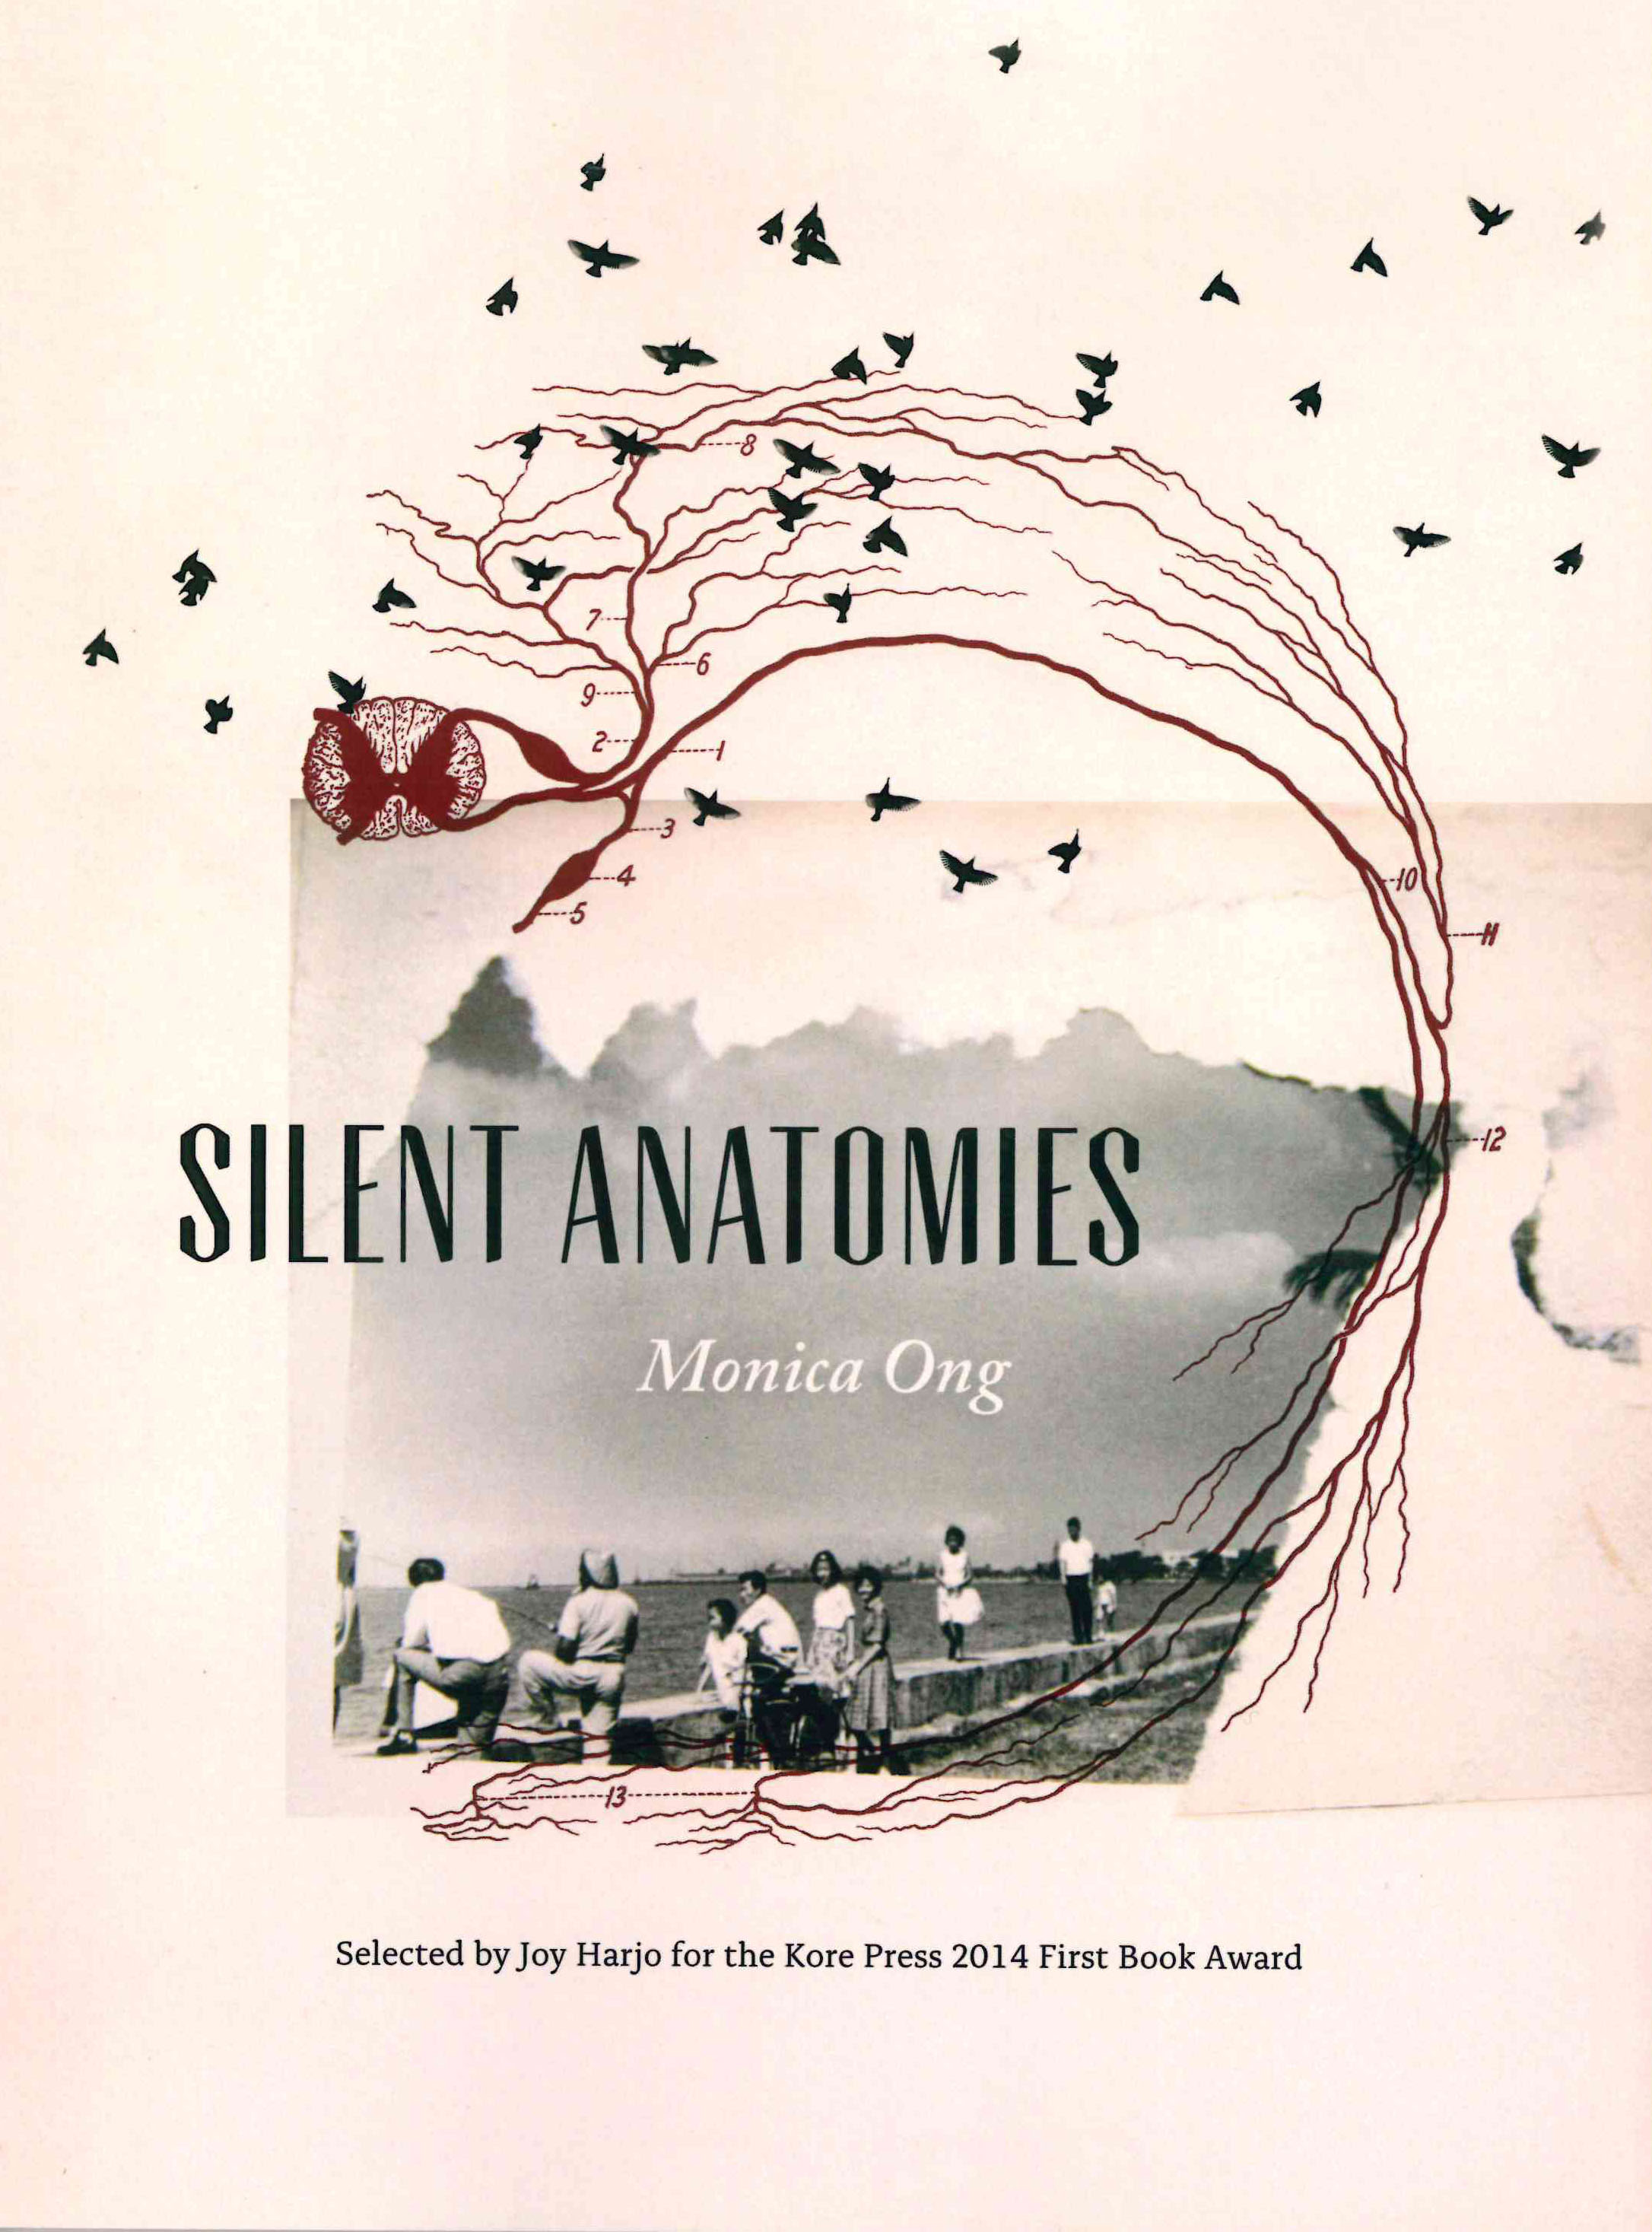 silent anatomies | monica ong | kore press